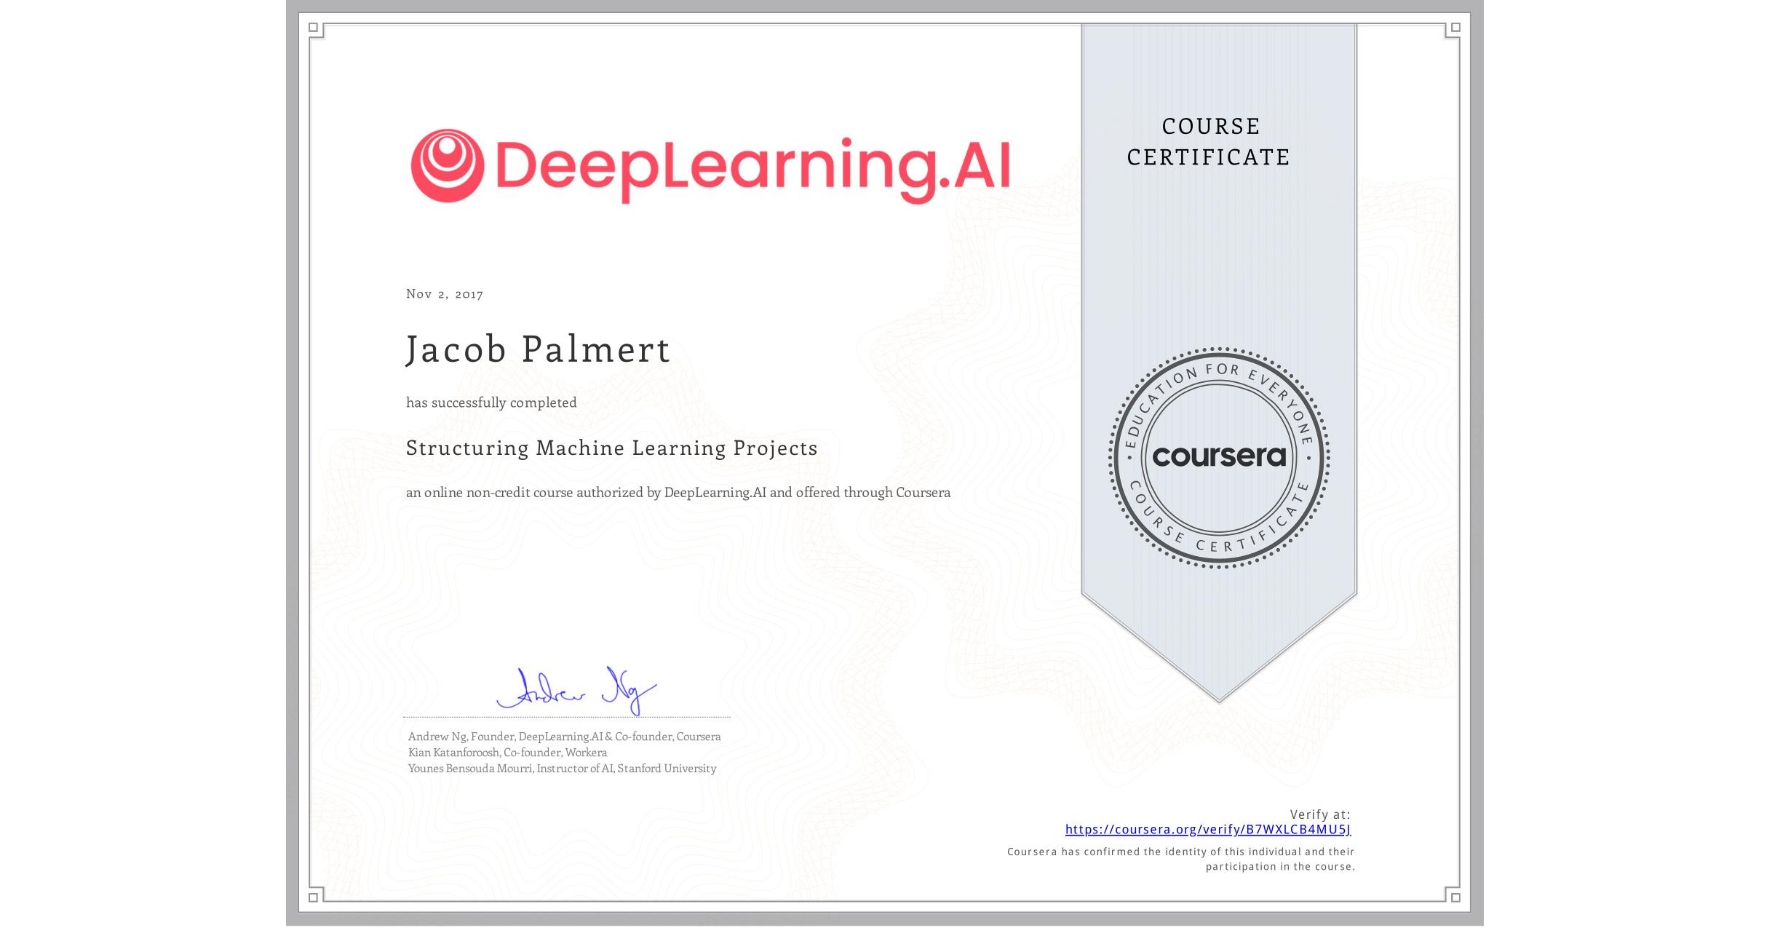 View certificate for Jacob Palmert, Structuring Machine Learning Projects, an online non-credit course authorized by DeepLearning.AI and offered through Coursera